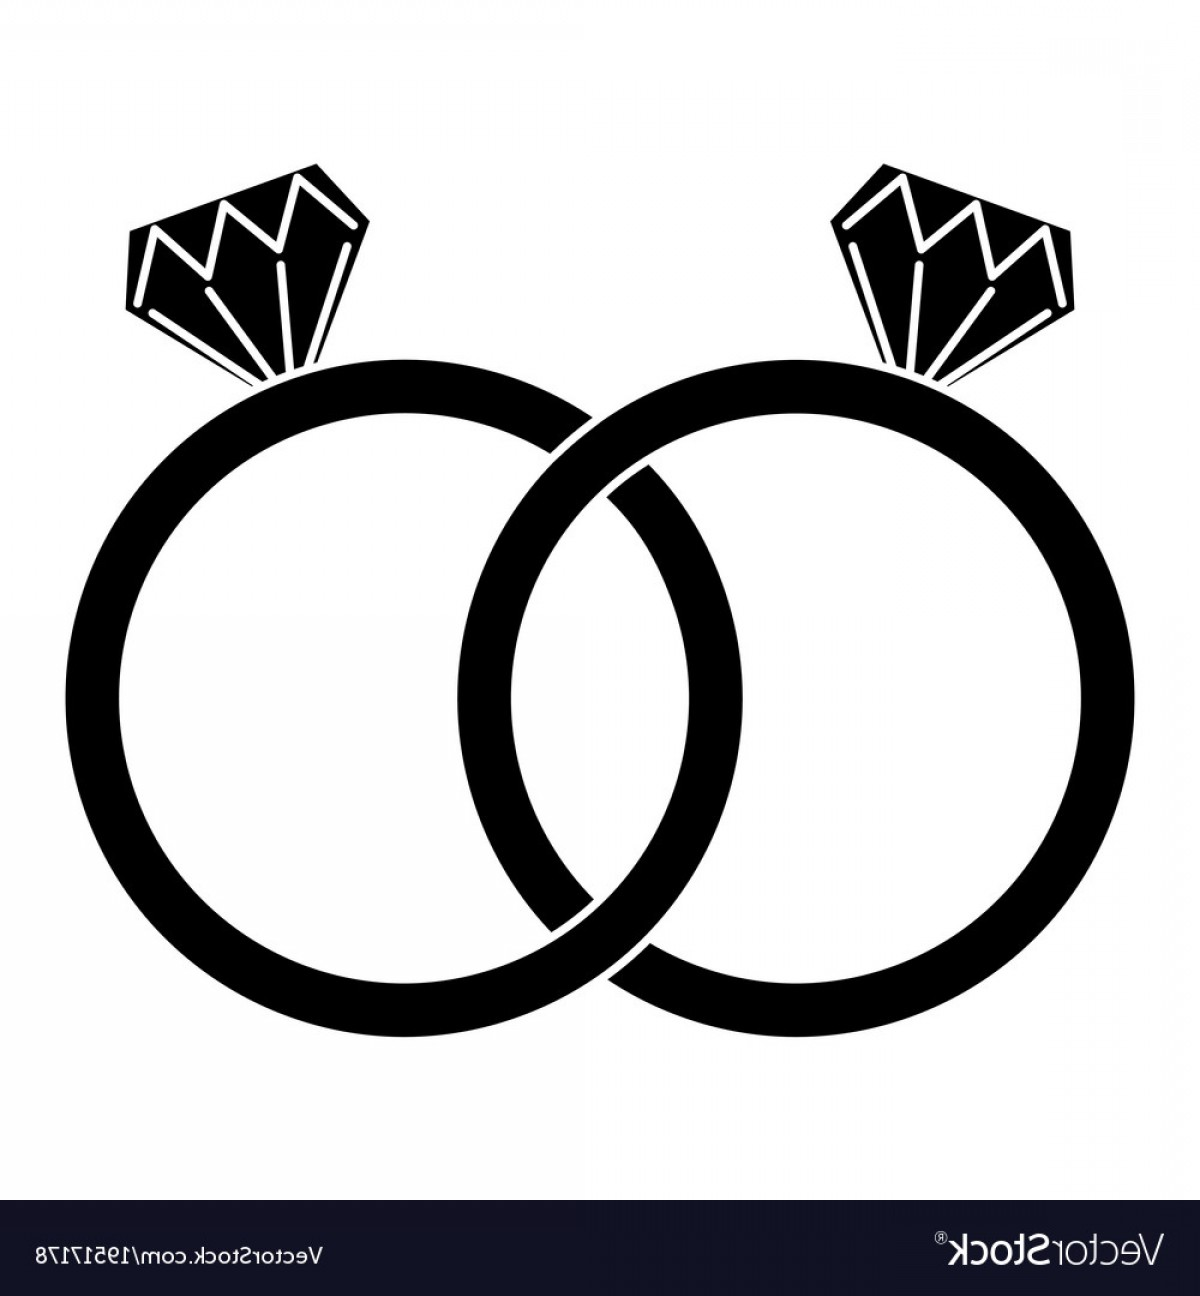 Ring vector clipart graphic black and white library Diamond Engagement Rings Icon Image Vector | SOIDERGI graphic black and white library